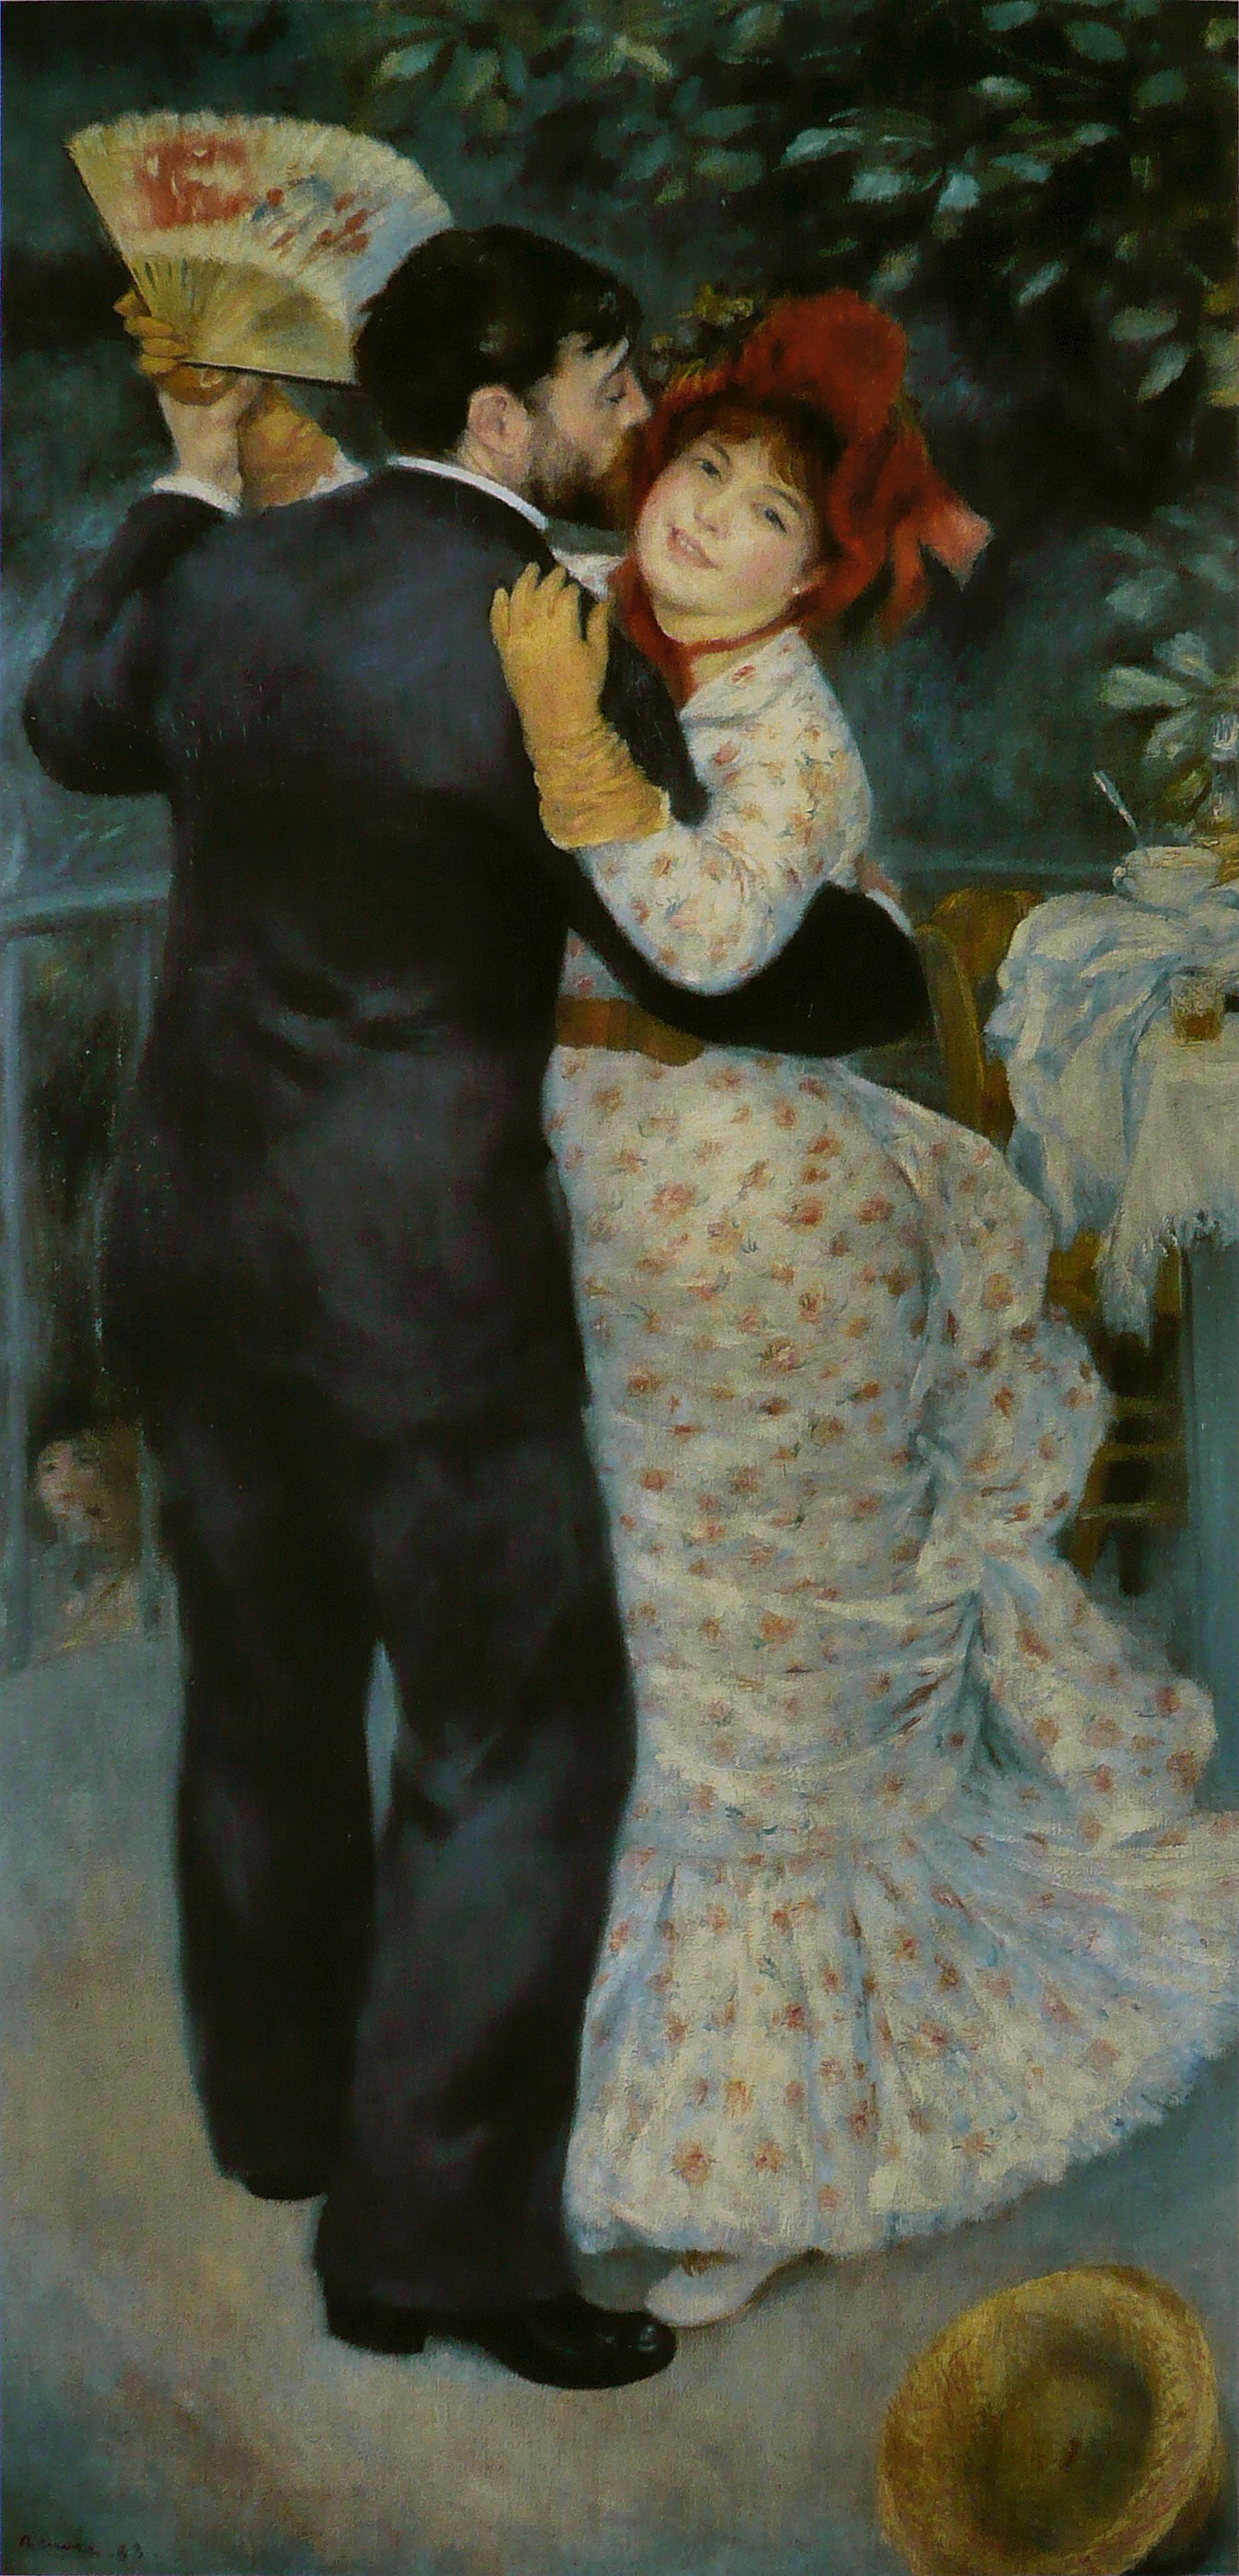 https://upload.wikimedia.org/wikipedia/commons/4/4f/Pierre-Auguste_Renoir_-_Danse_%C3%A0_la_campagne.jpg